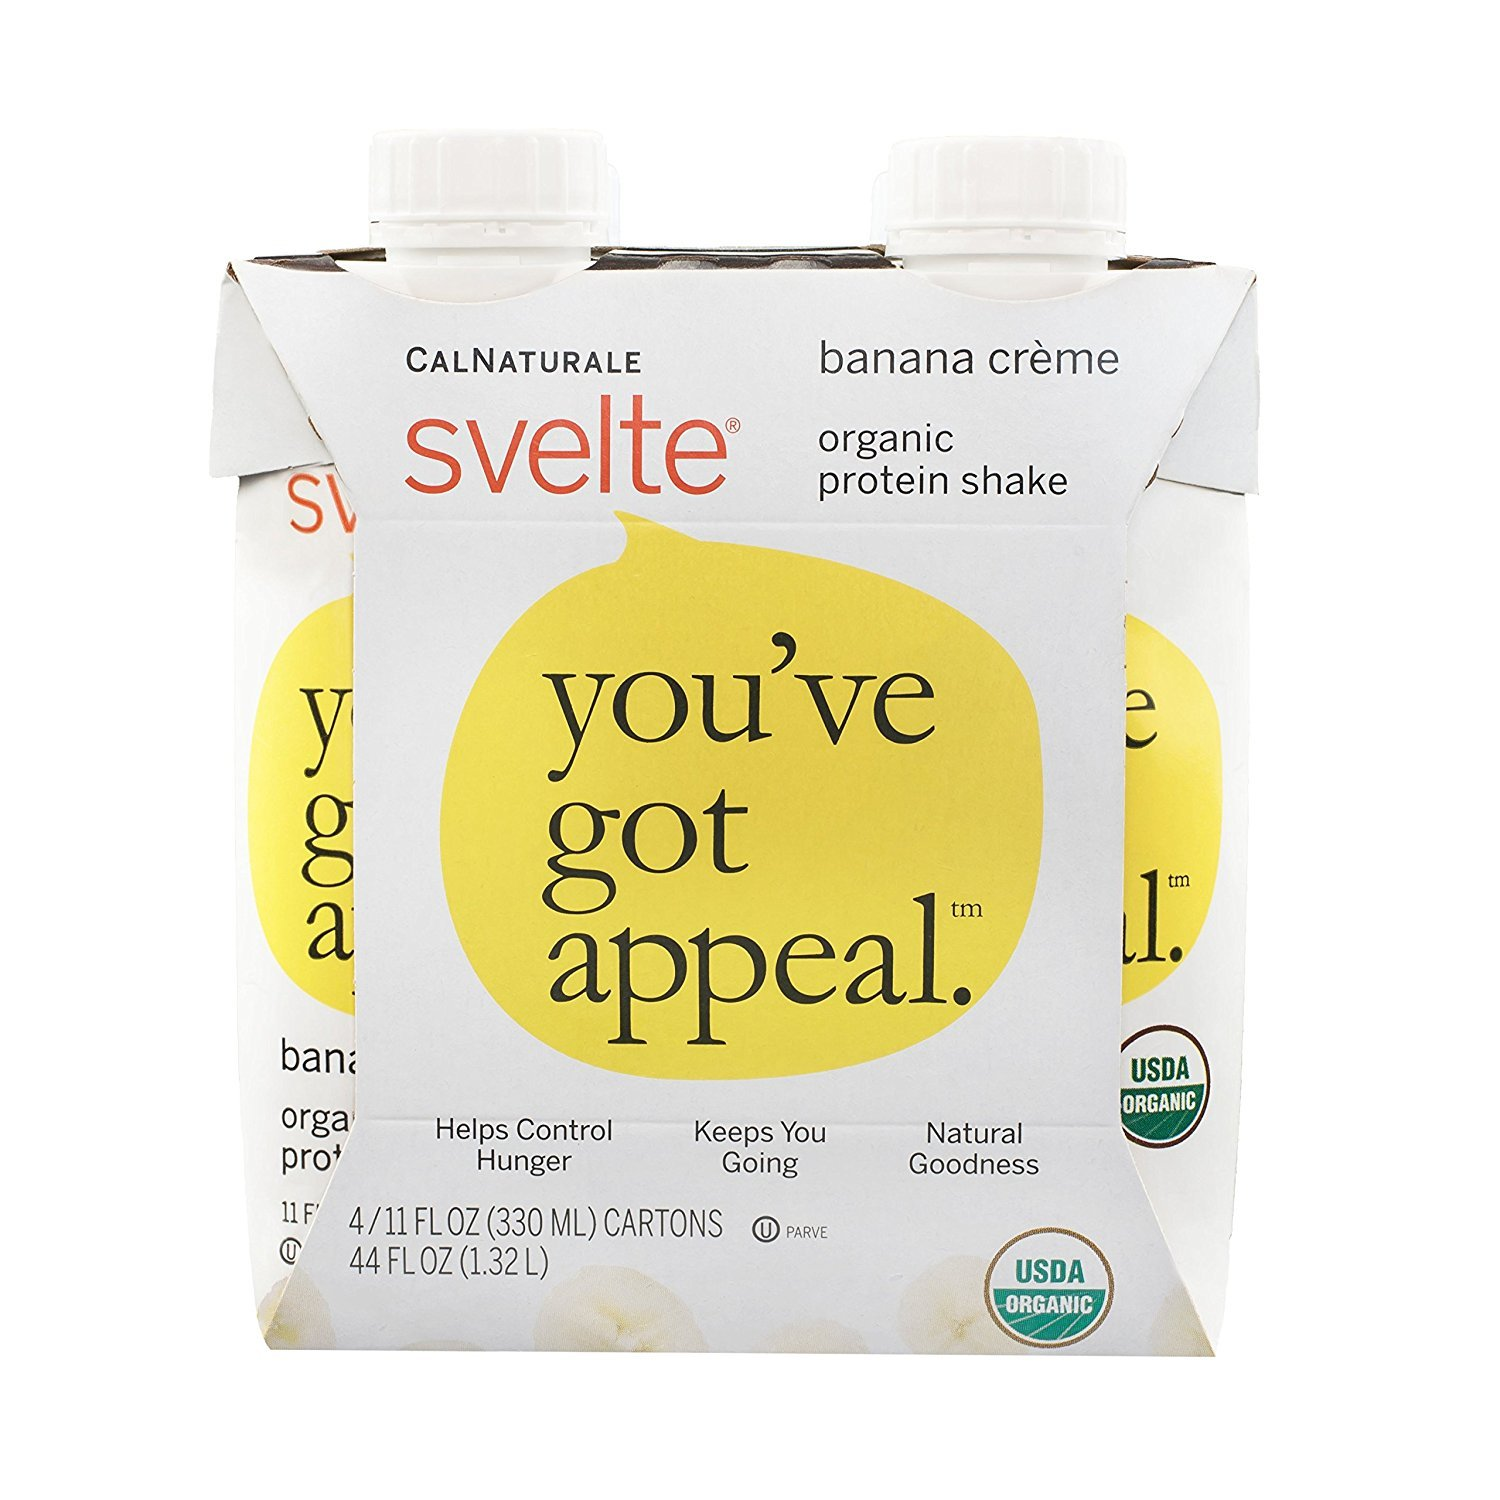 Svelte Organic Protein Shake, Banana Crème, 11 Ounce, 4 Count (Pack of 6)